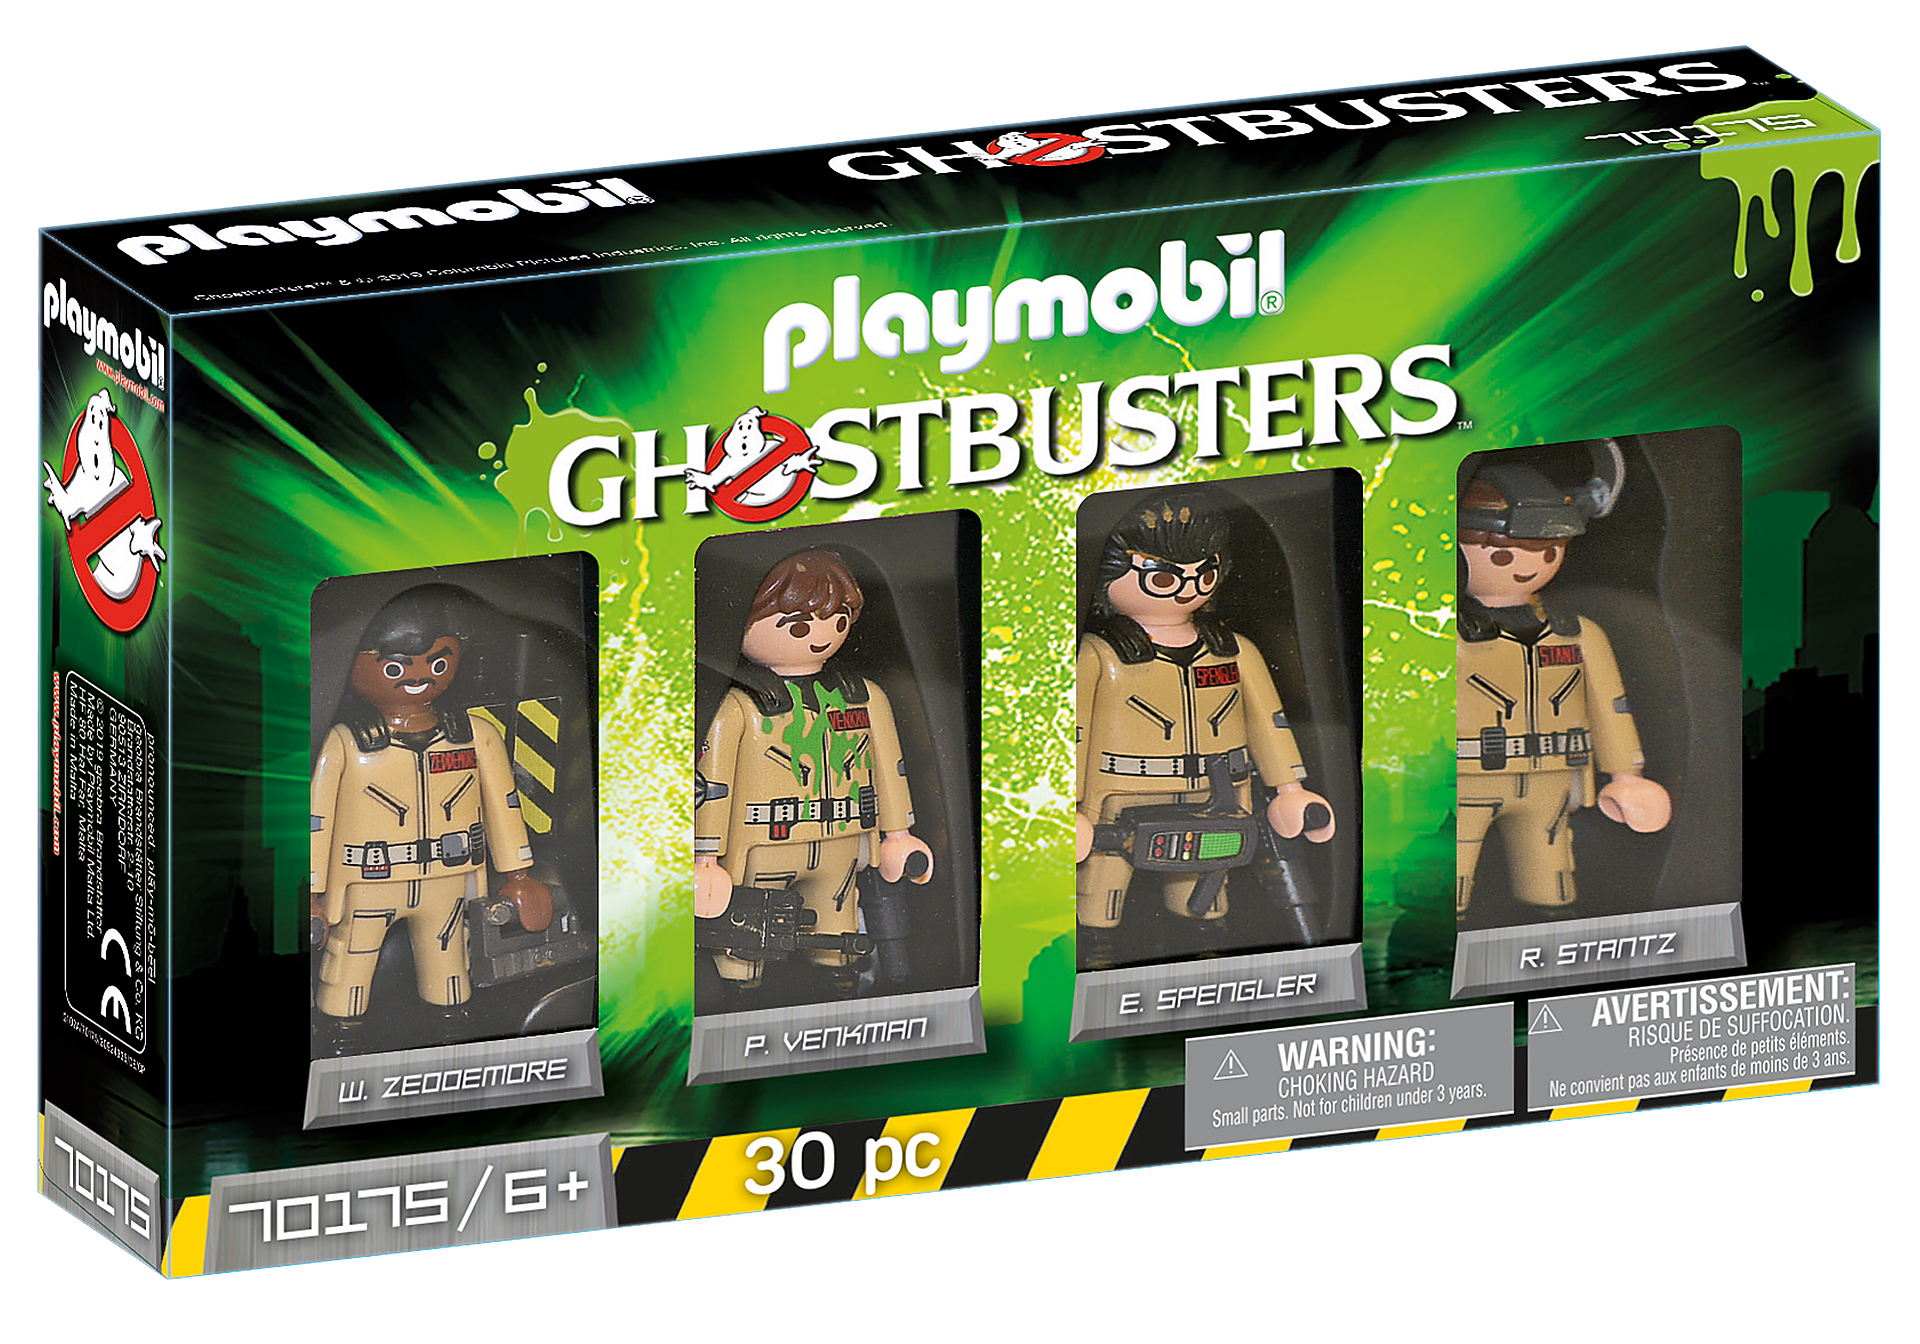 http://media.playmobil.com/i/playmobil/70175_product_box_front/Ghostbusters™ Figurenset Ghostbusters